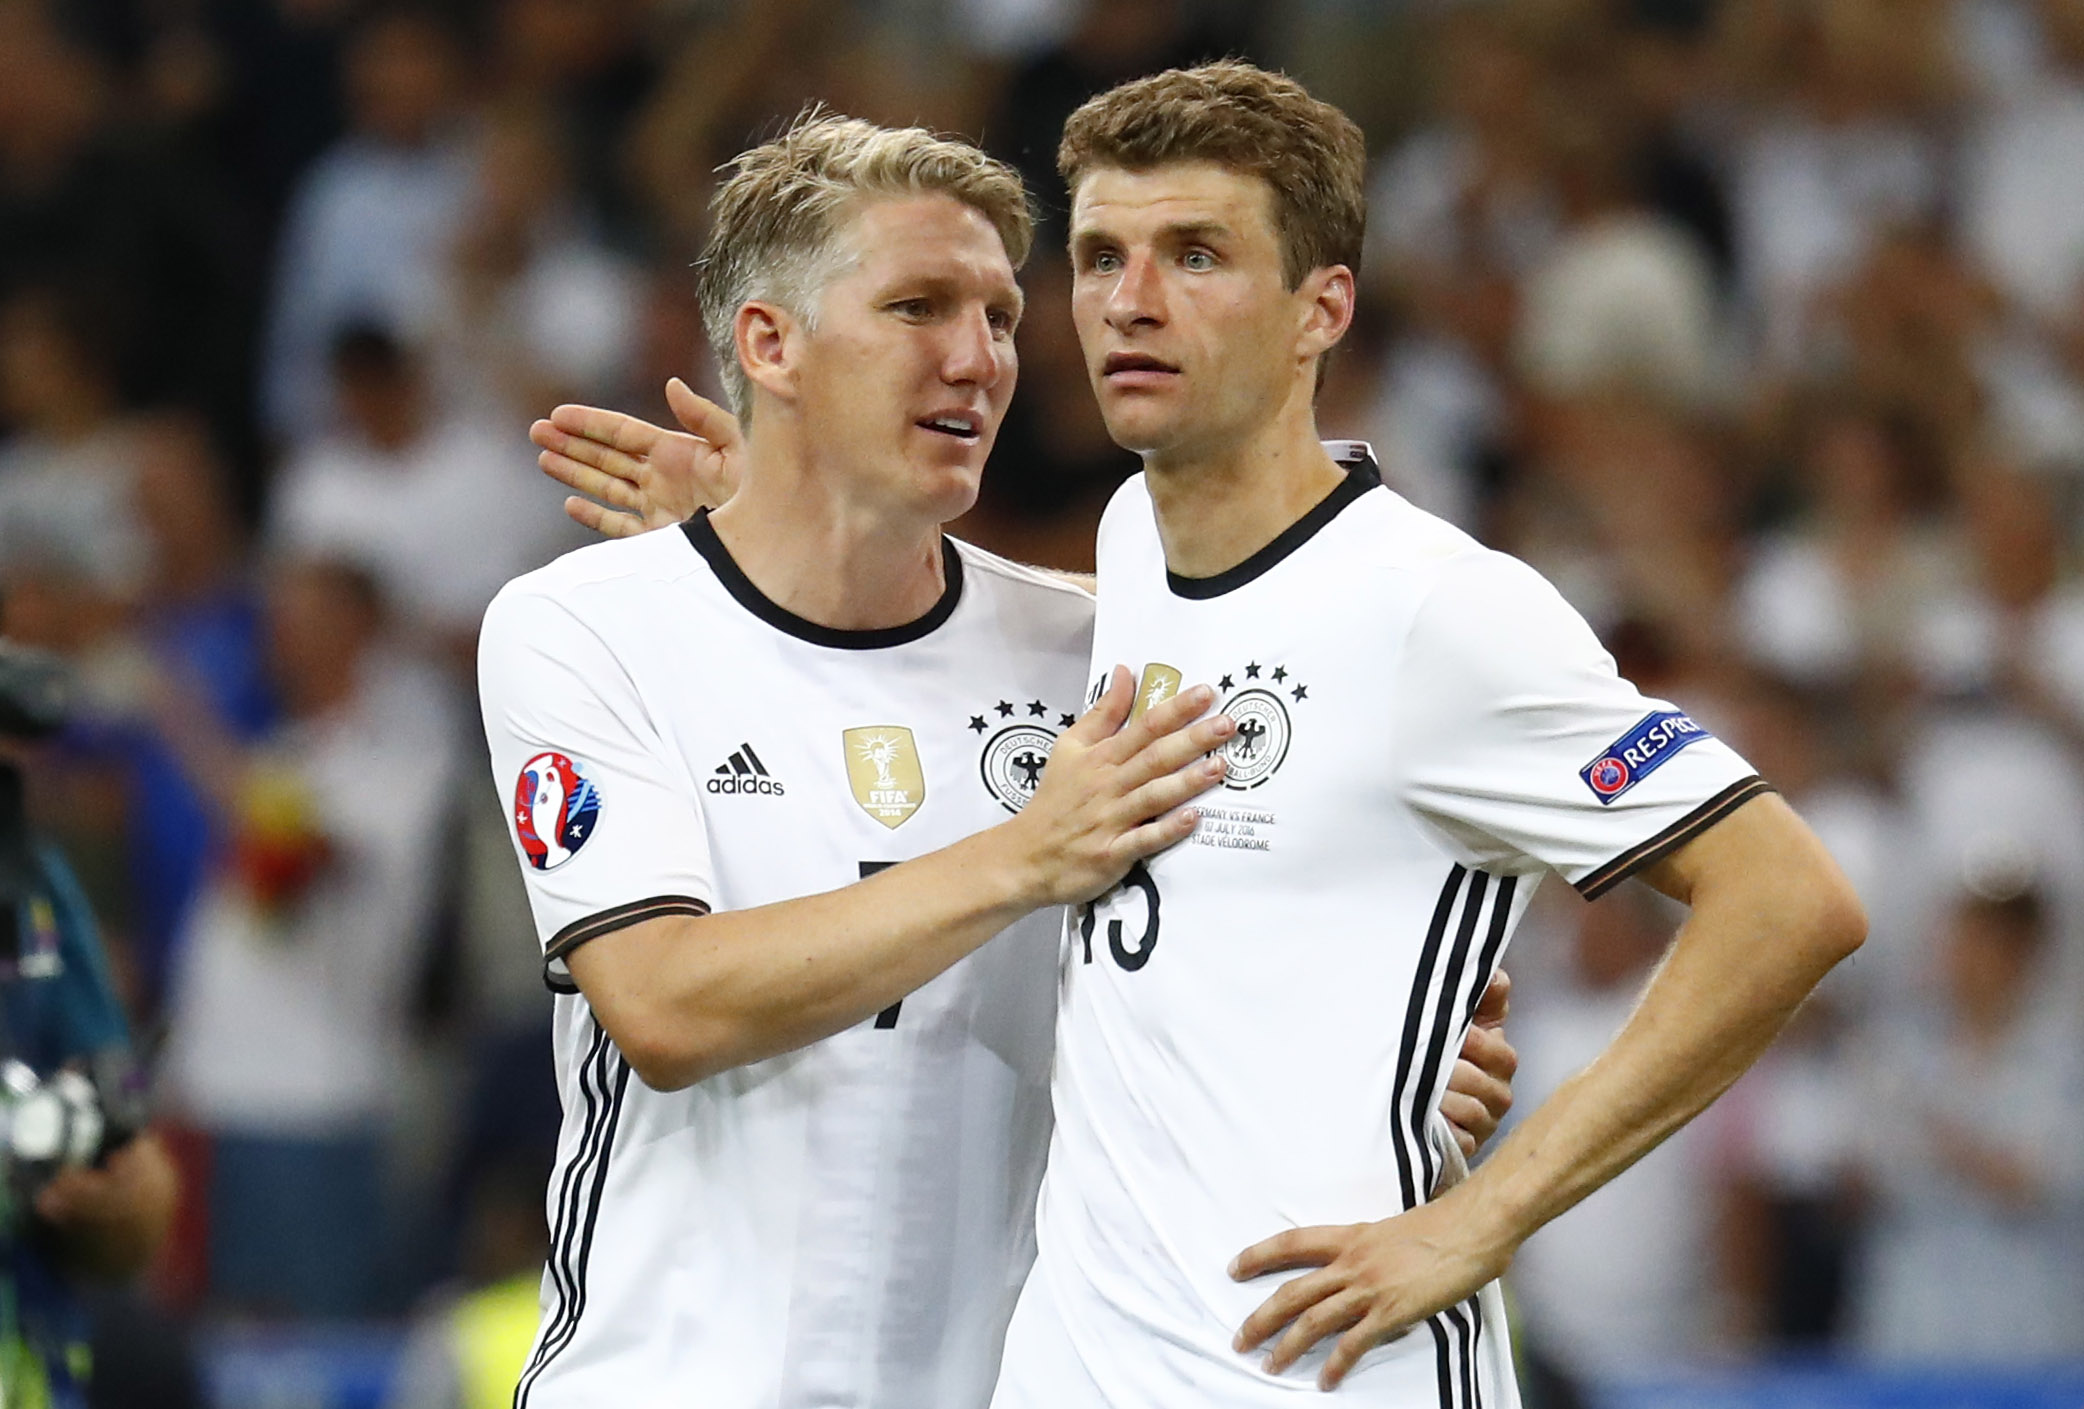 Schweinsteiger lifts lid on previous Manchester United interest in Thomas Muller